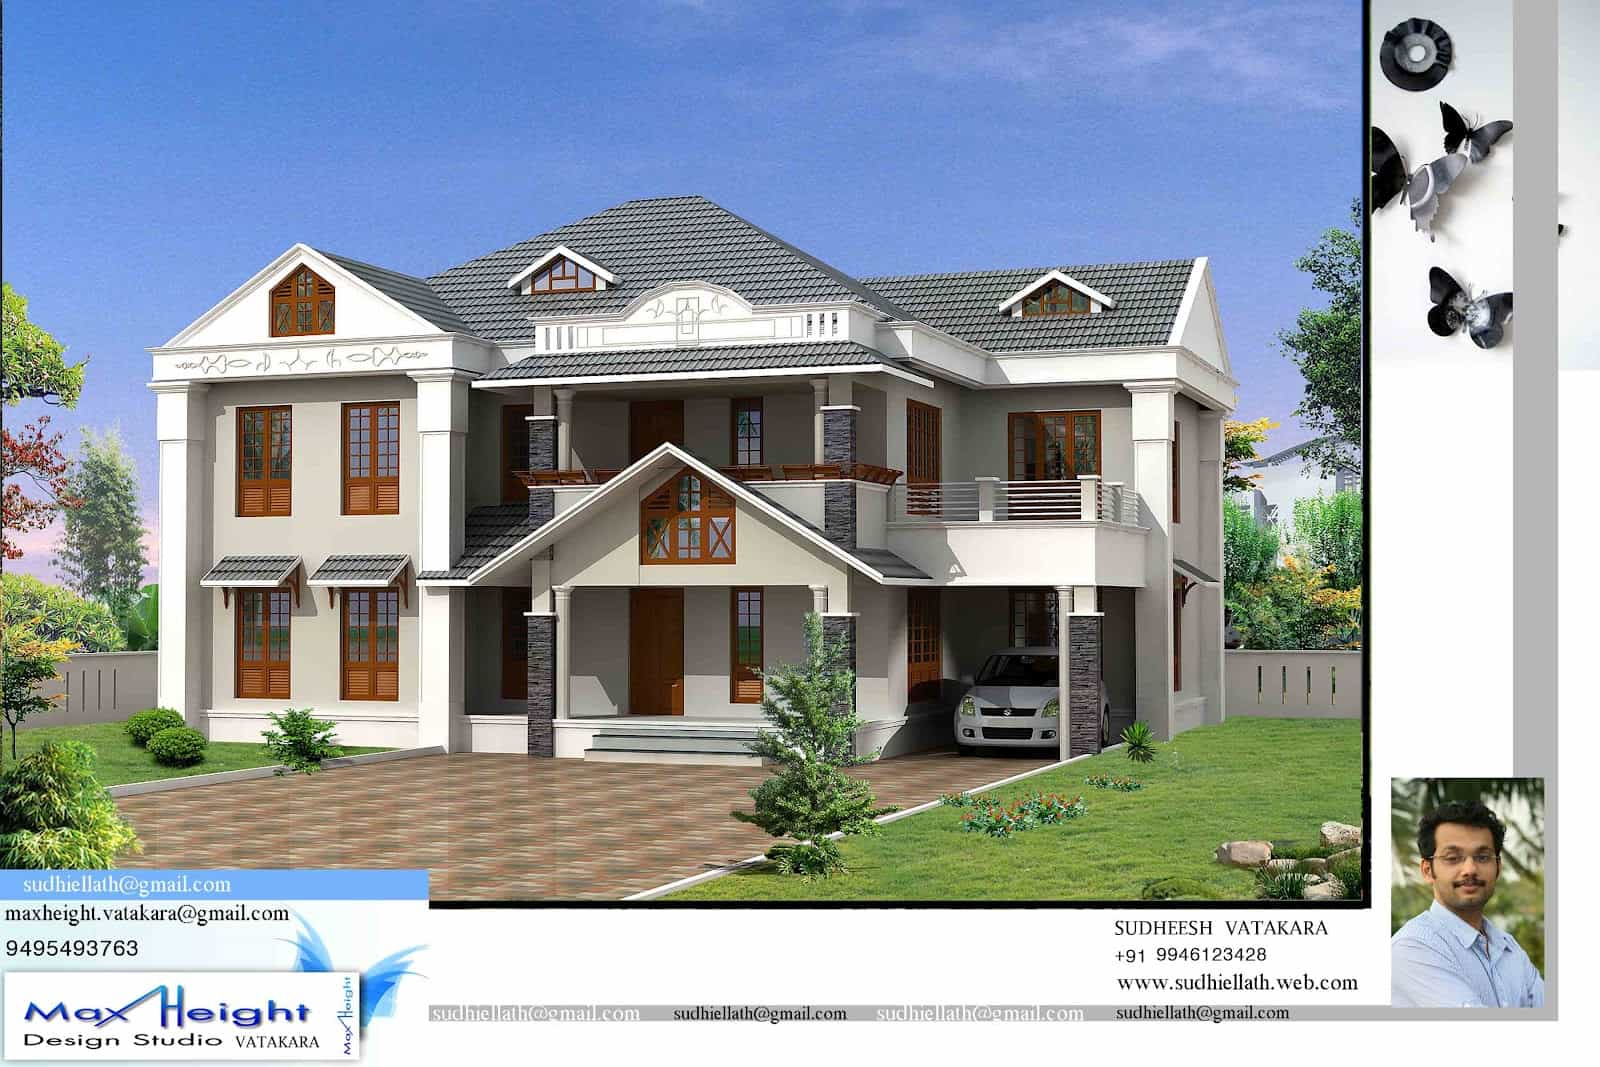 Single storey kerala house model with kerala house plans for Building model houses